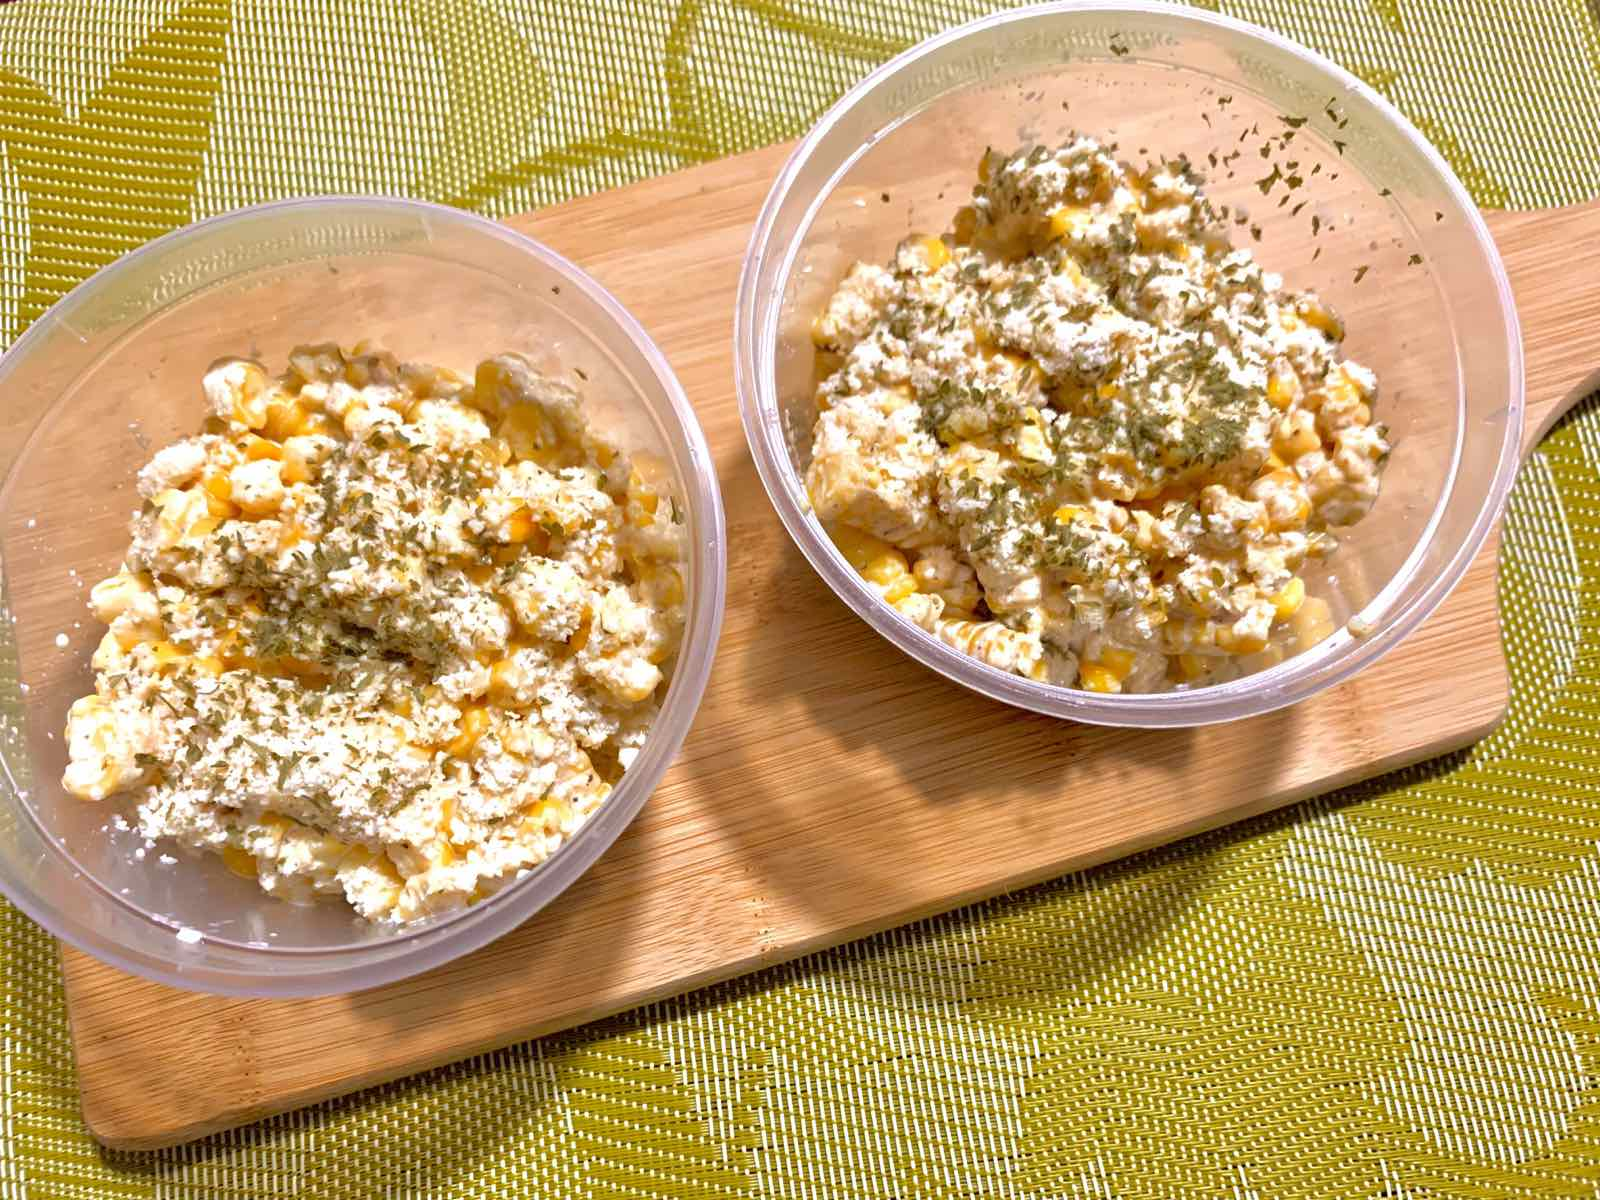 Mexican street corn in tubs.